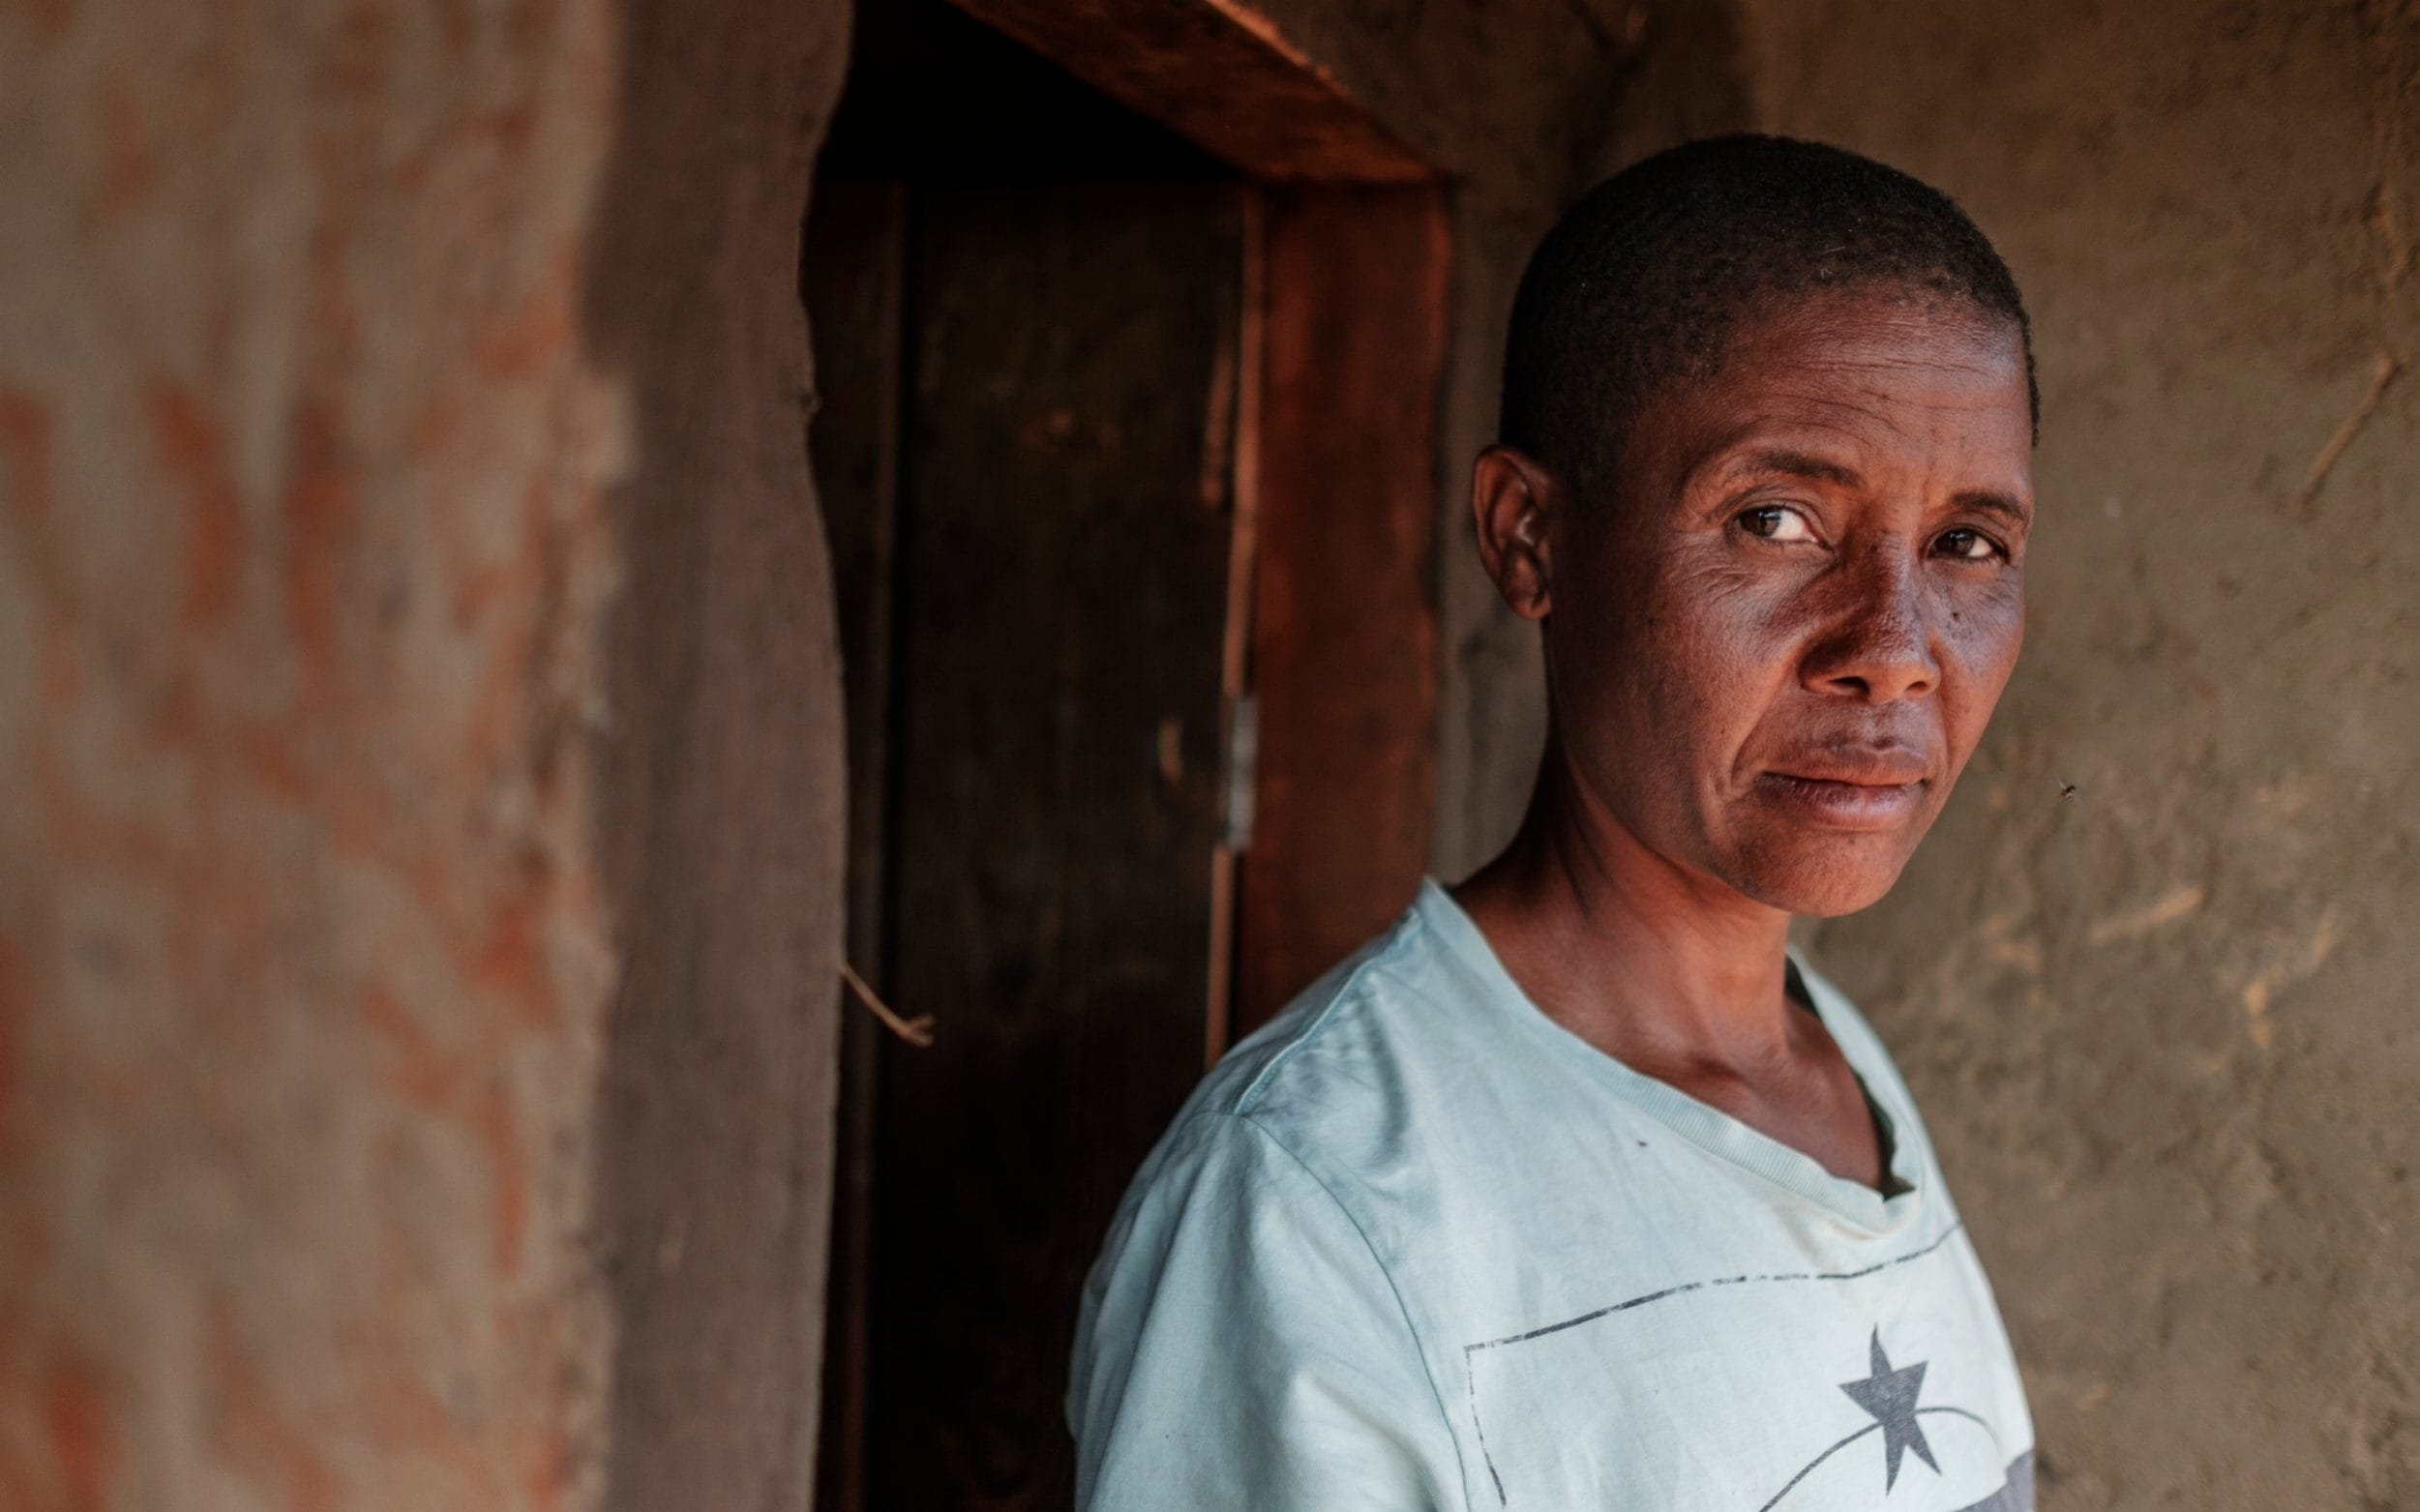 Misa Mawlidi, 38, saw her son Goodson kidnapped as she was forced to choose which of her children to save